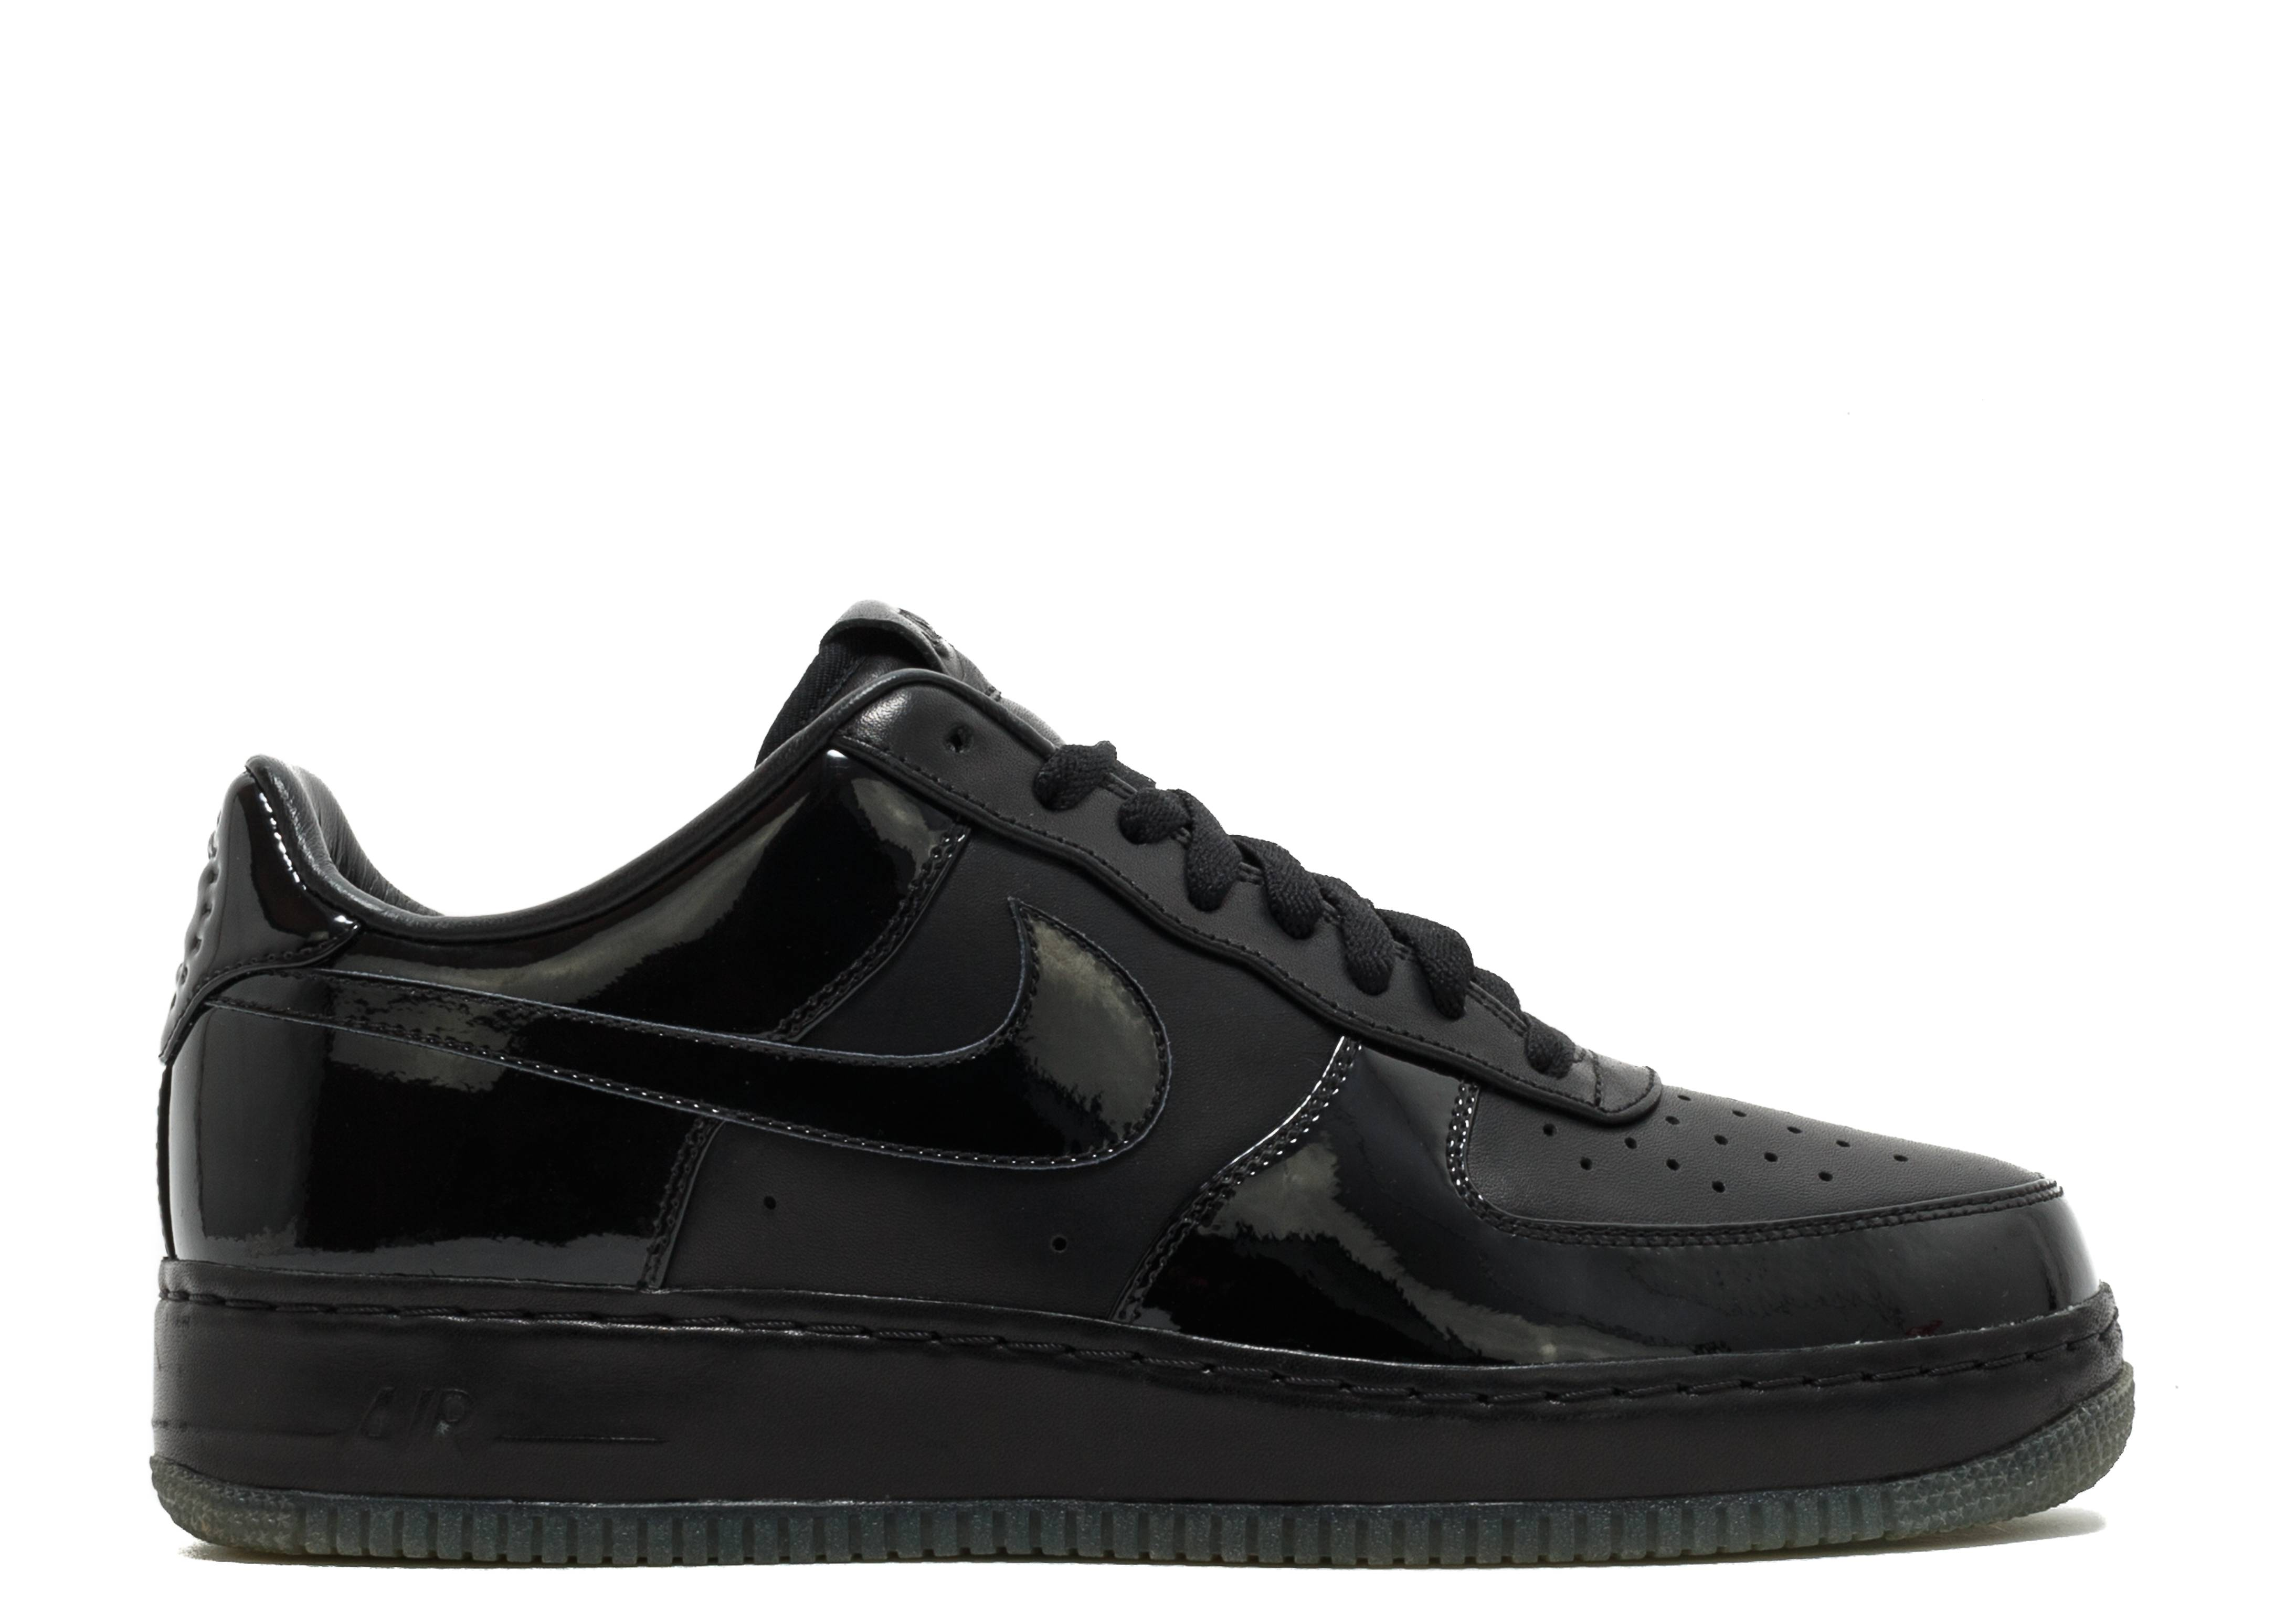 Nike Air Force One Sprm